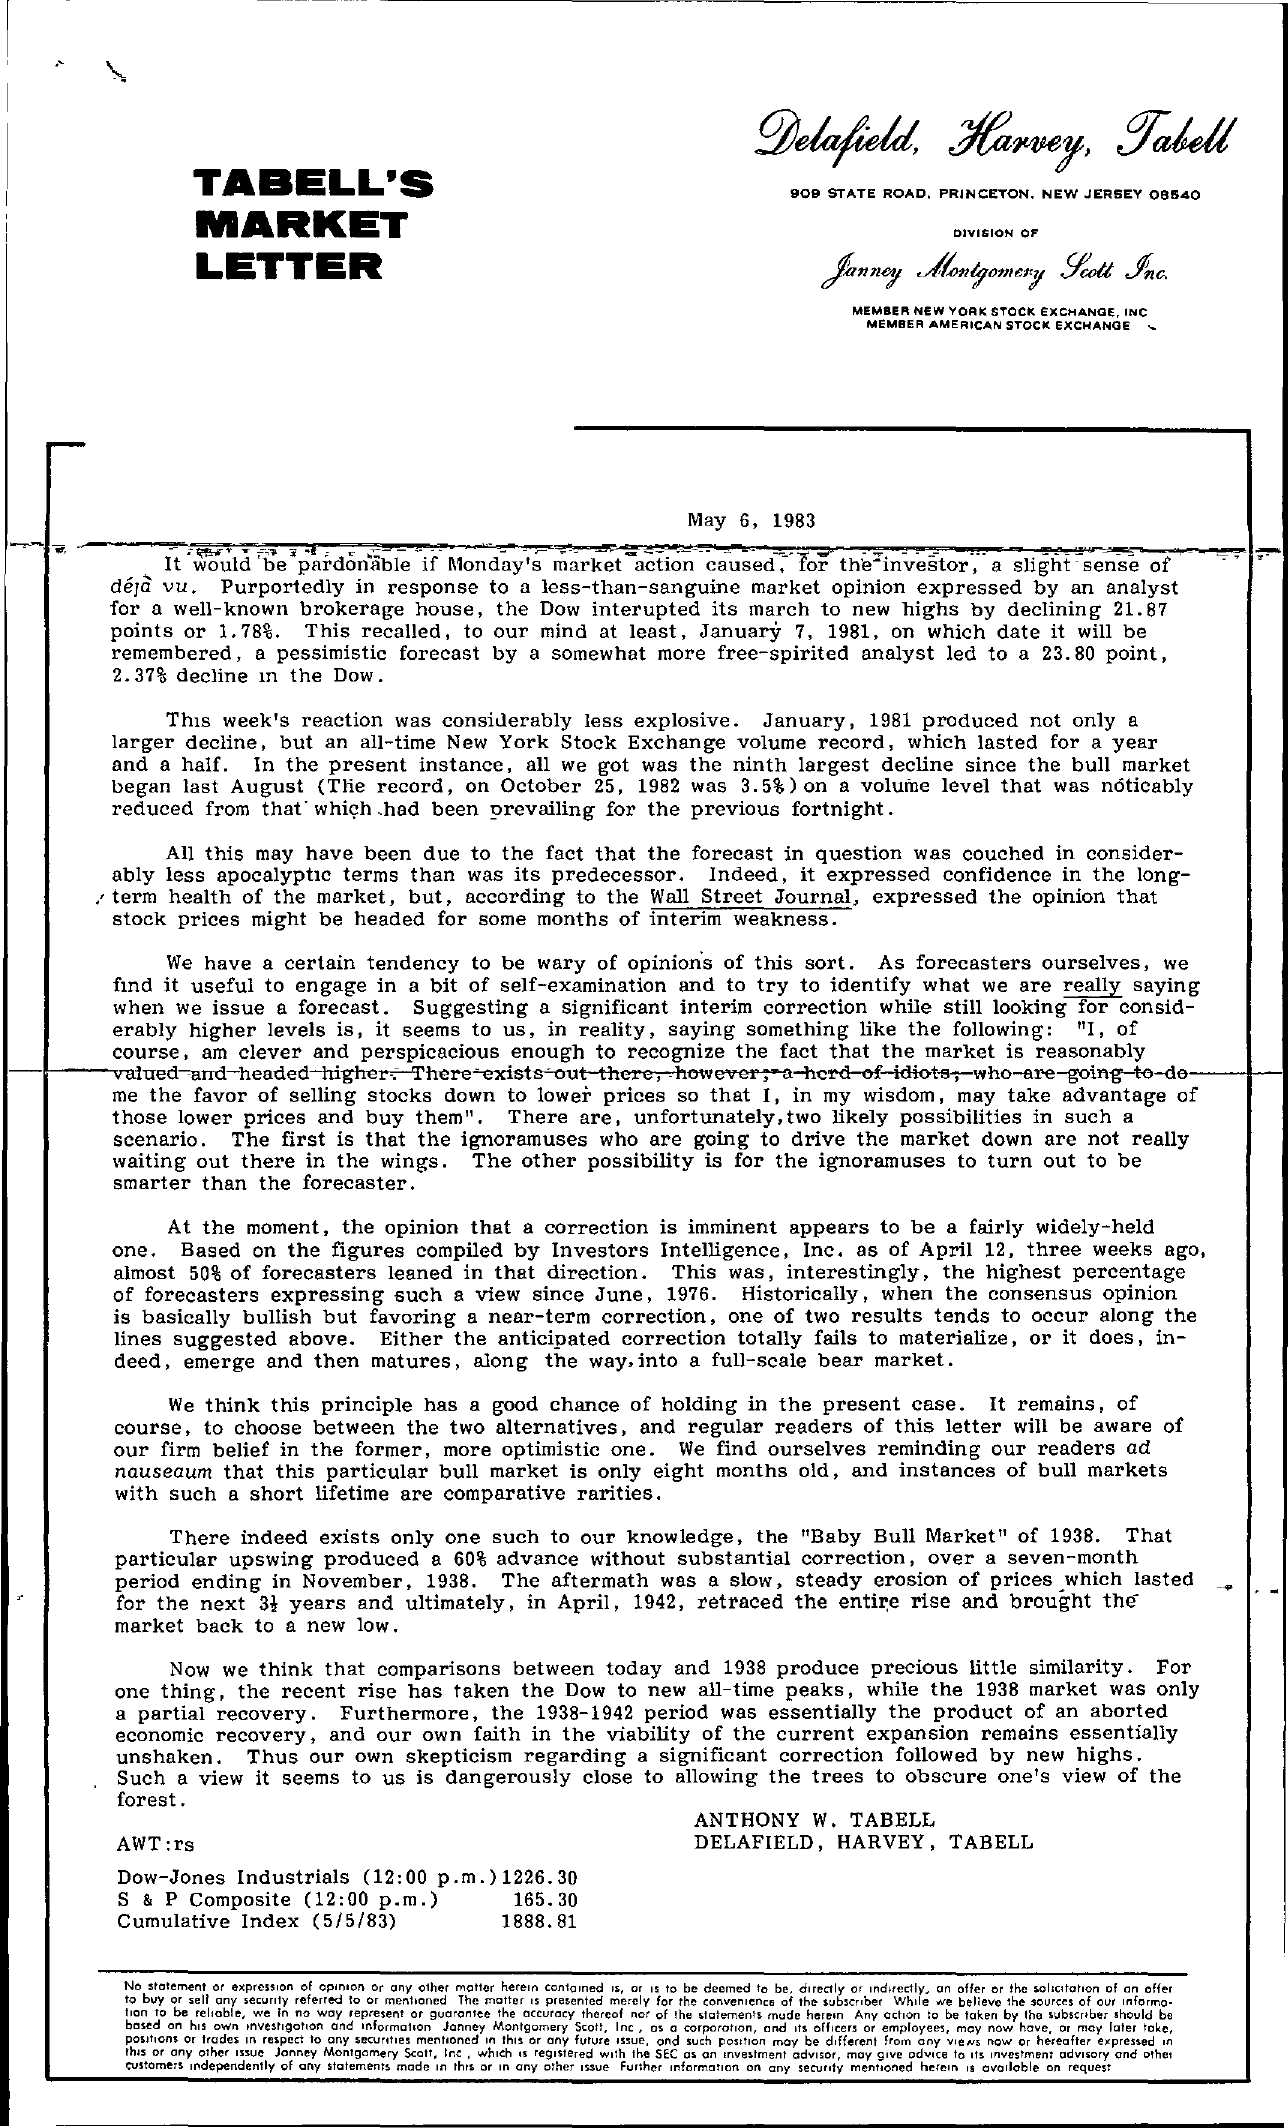 Tabell's Market Letter - May 06, 1983